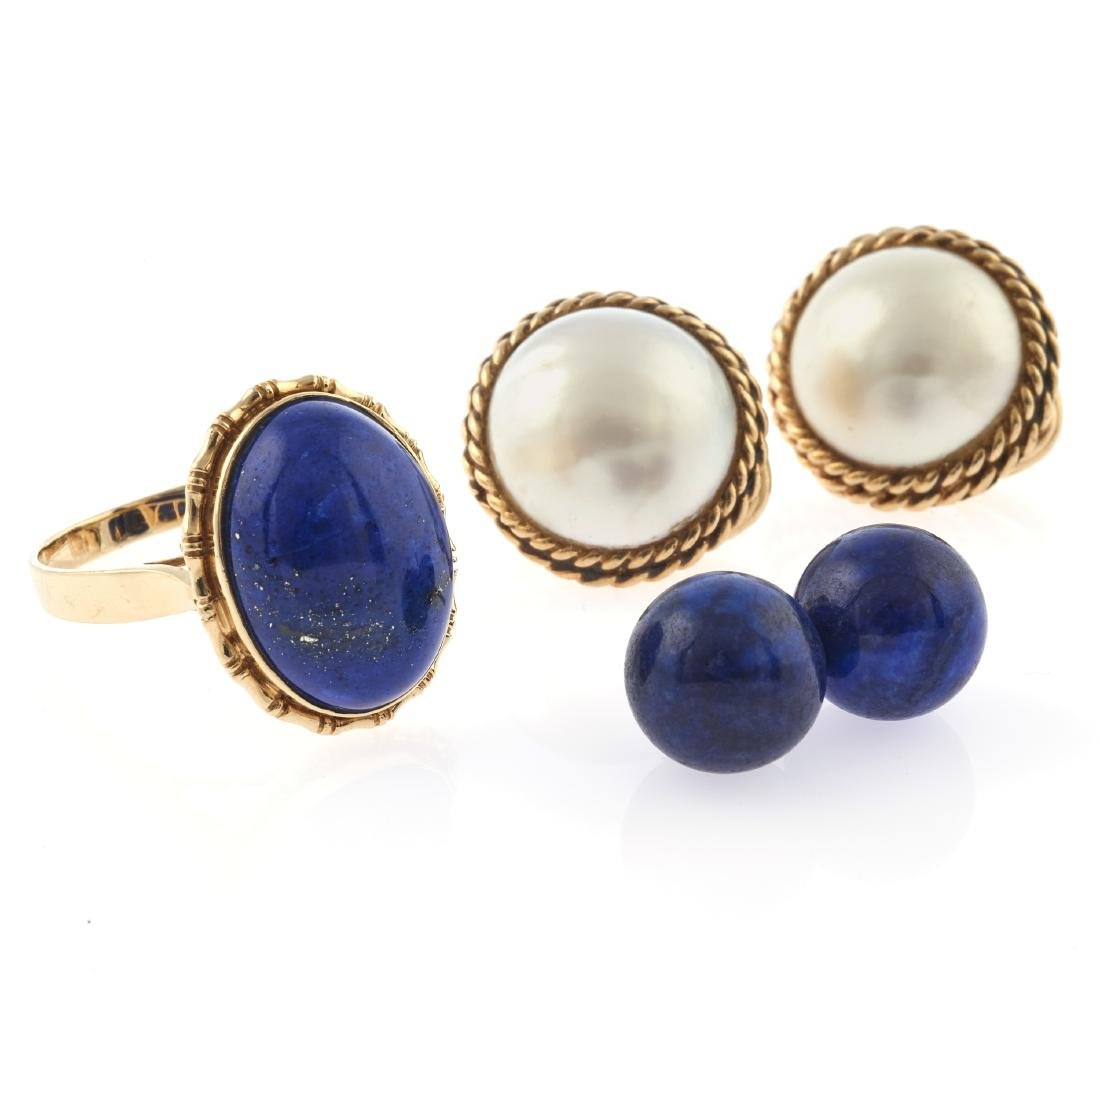 A collection of lapis lazuli, cultured pearl, 14k